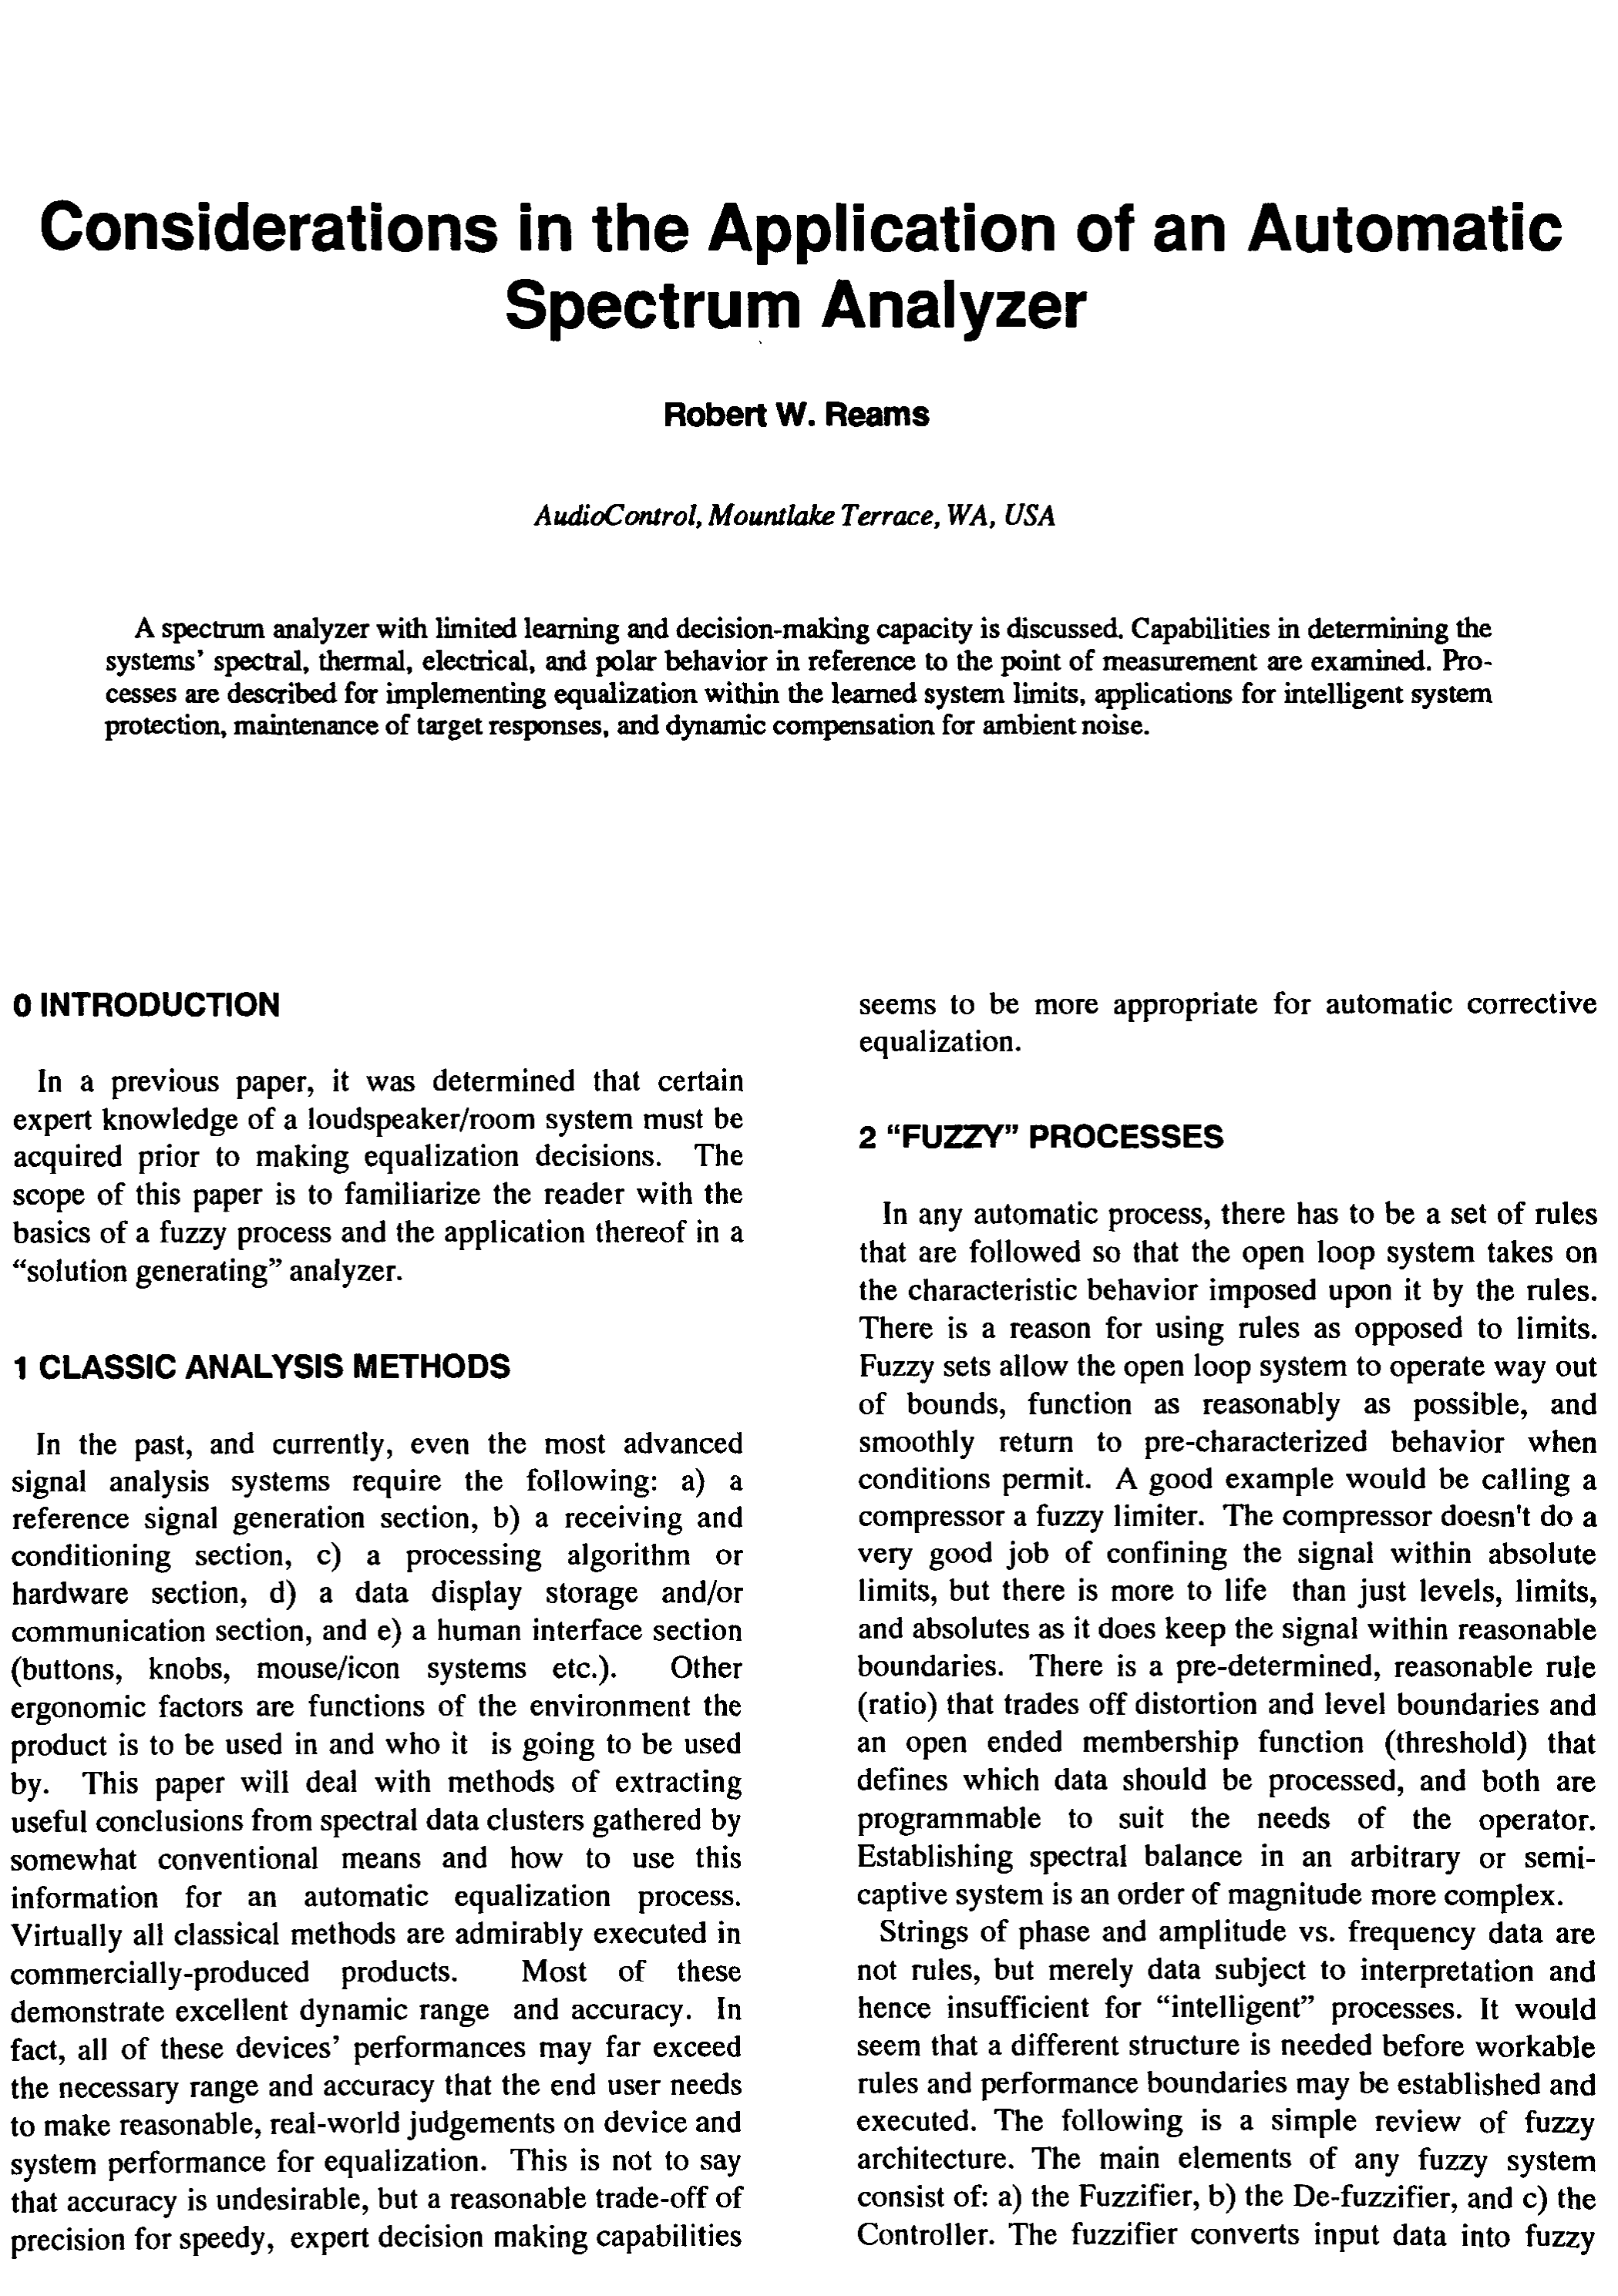 AES E-Library » Considerations in the Application of an Automatic ...